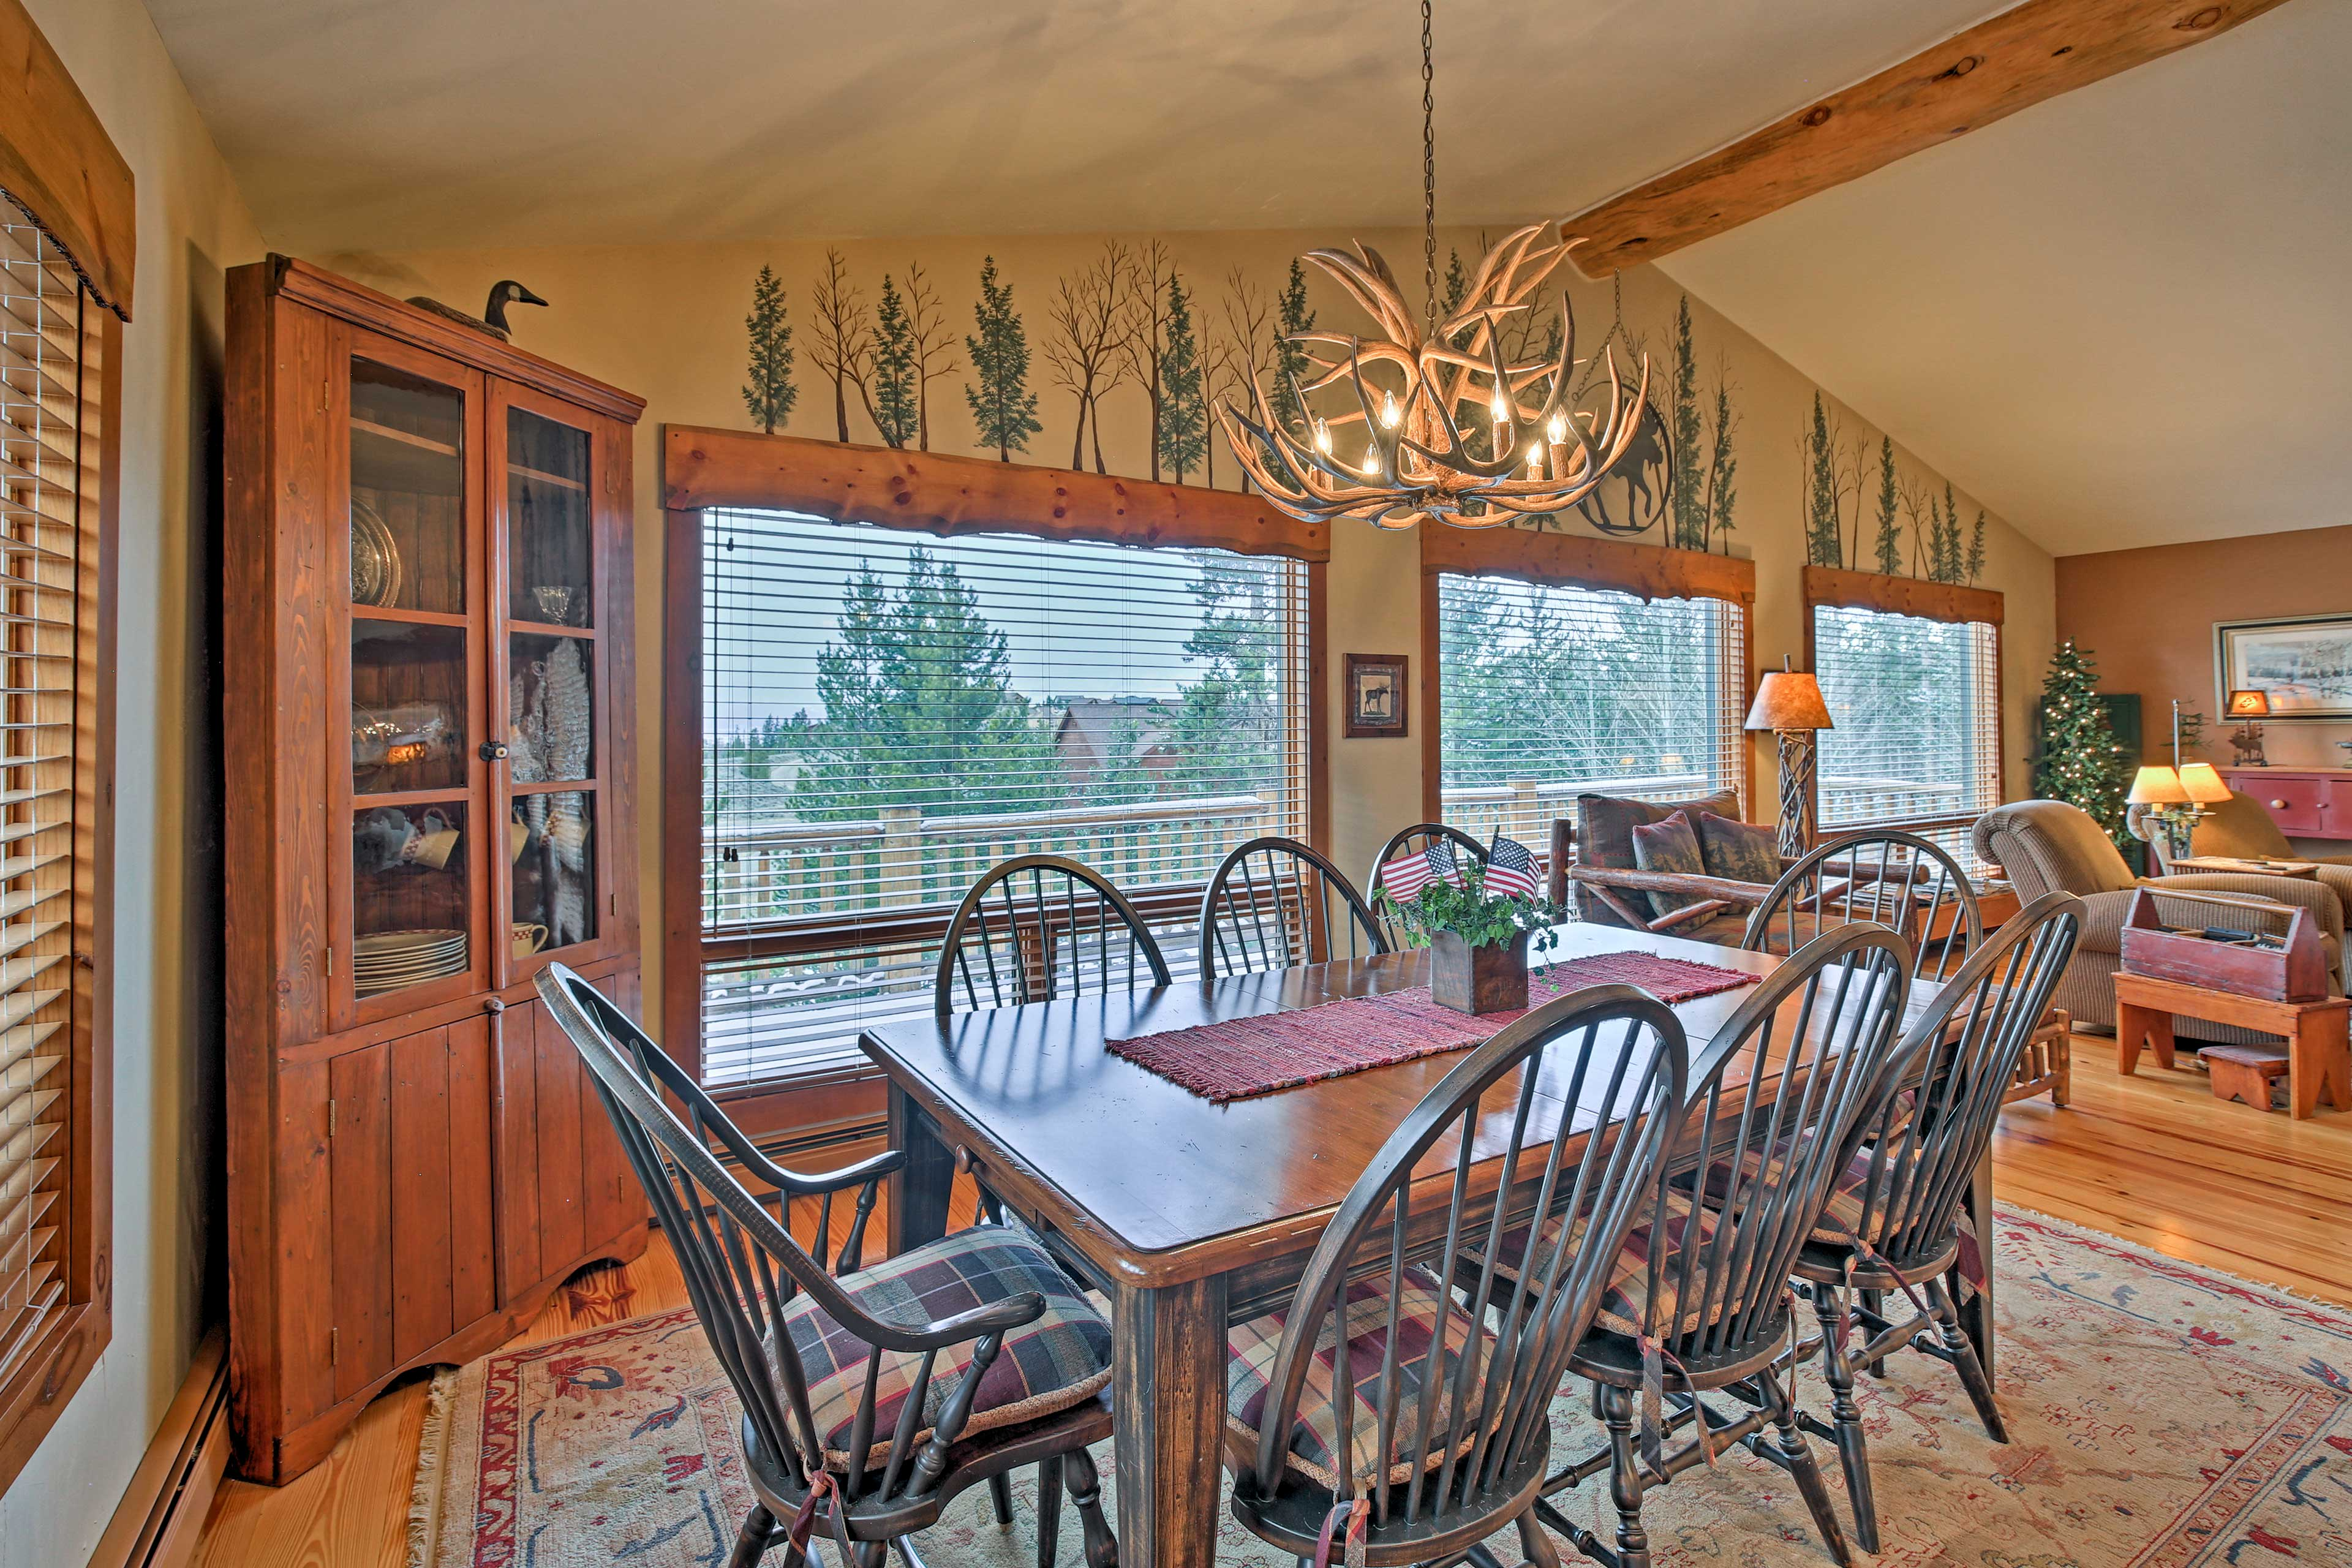 Set the dining table for 8 guests to enjoy a meal together.